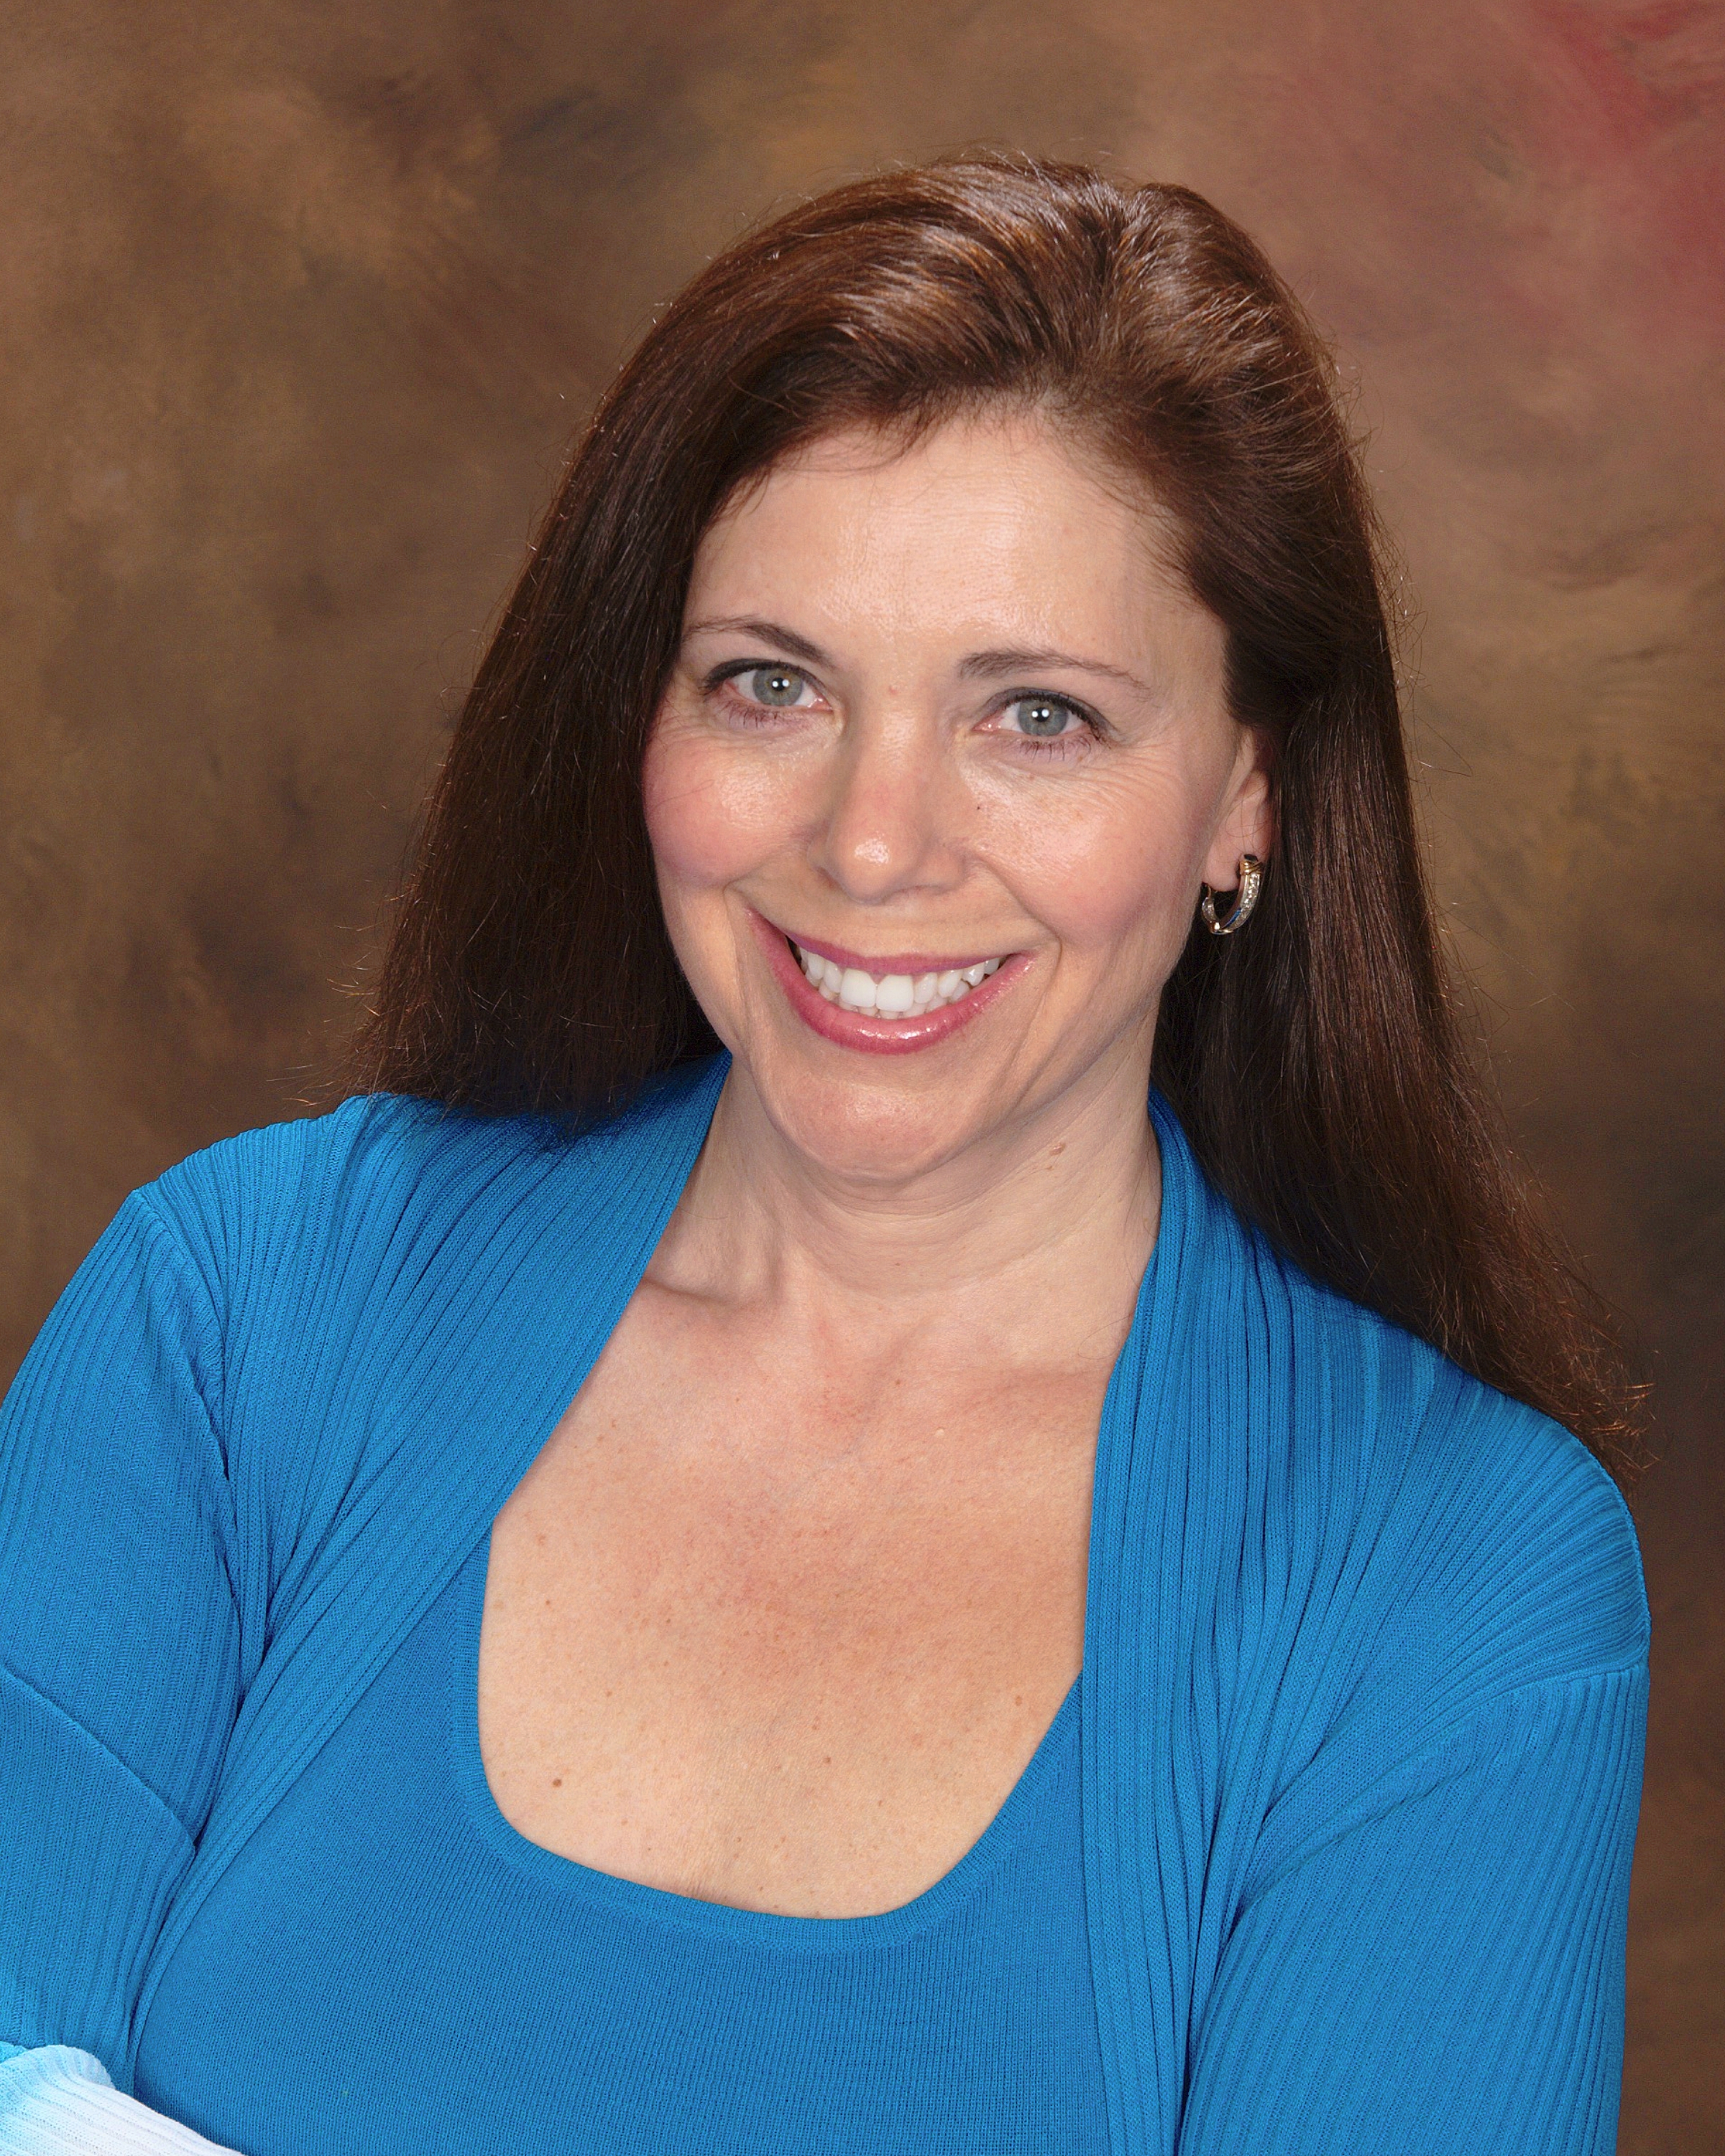 Search Homes For Rent By School District: Fran Wilson, Real Estate Agent